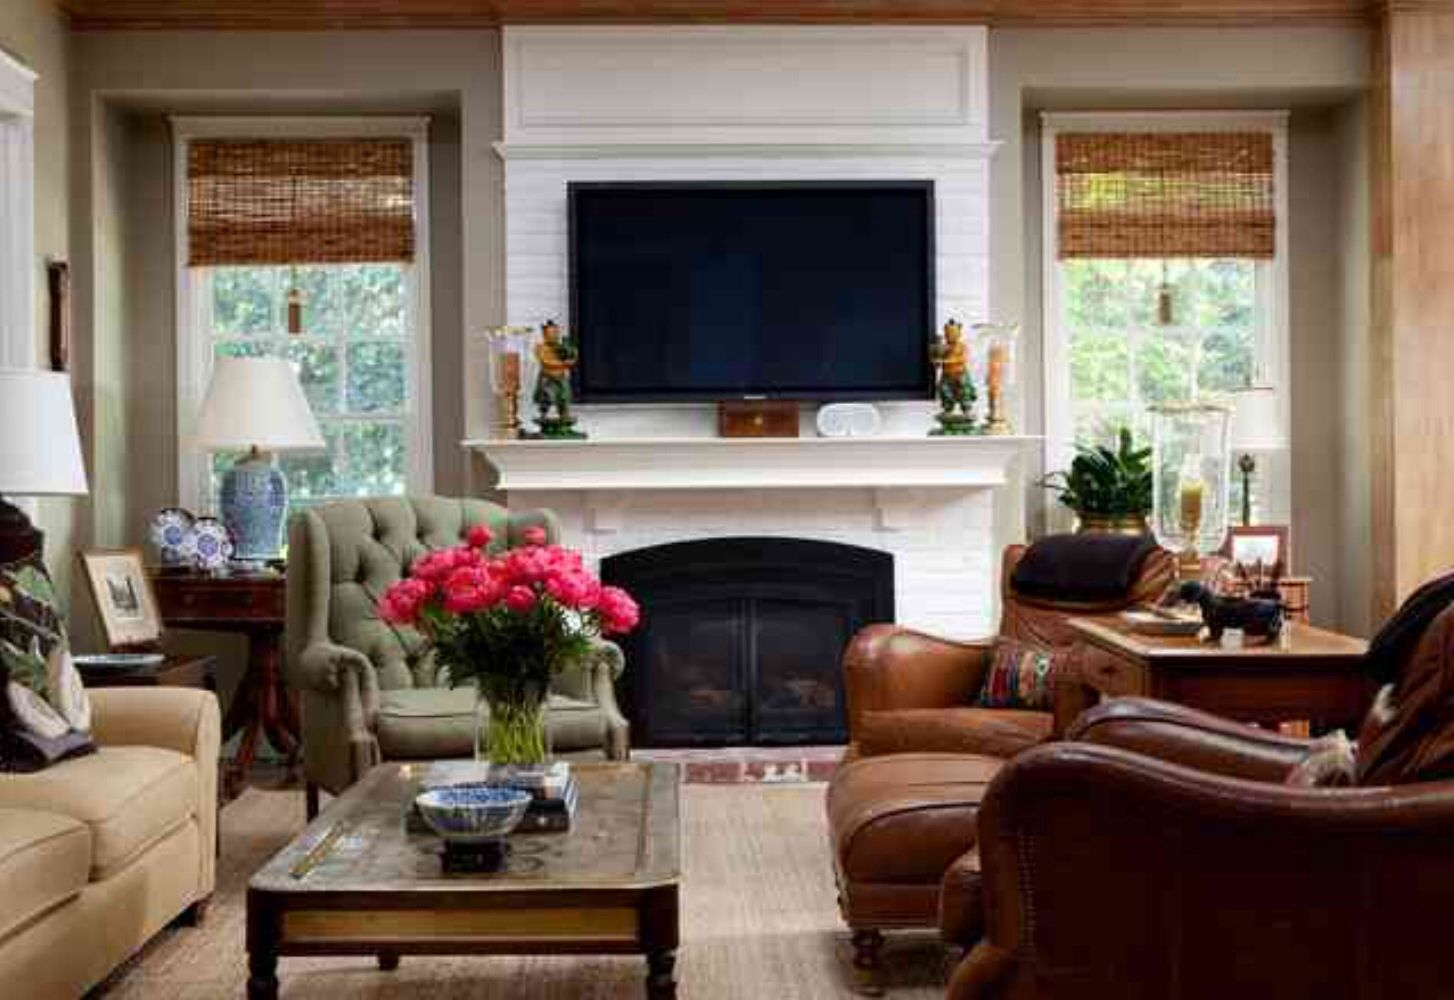 White Brick Fireplace And A Cozy Living Room White Brick Fireplace Family Room Luxury Living Room Design